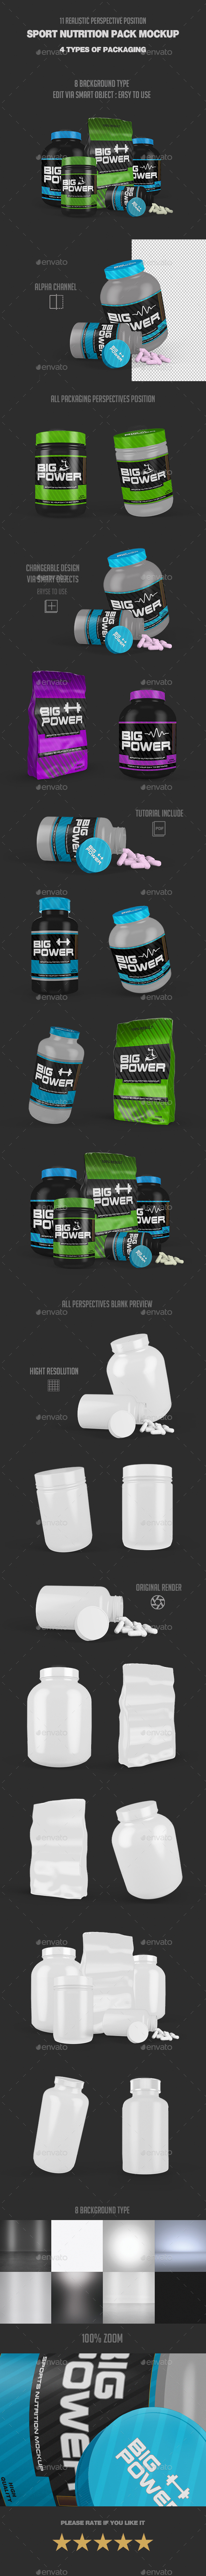 Sport Nutrition Pack Mock Up - Product Mock-Ups Graphics